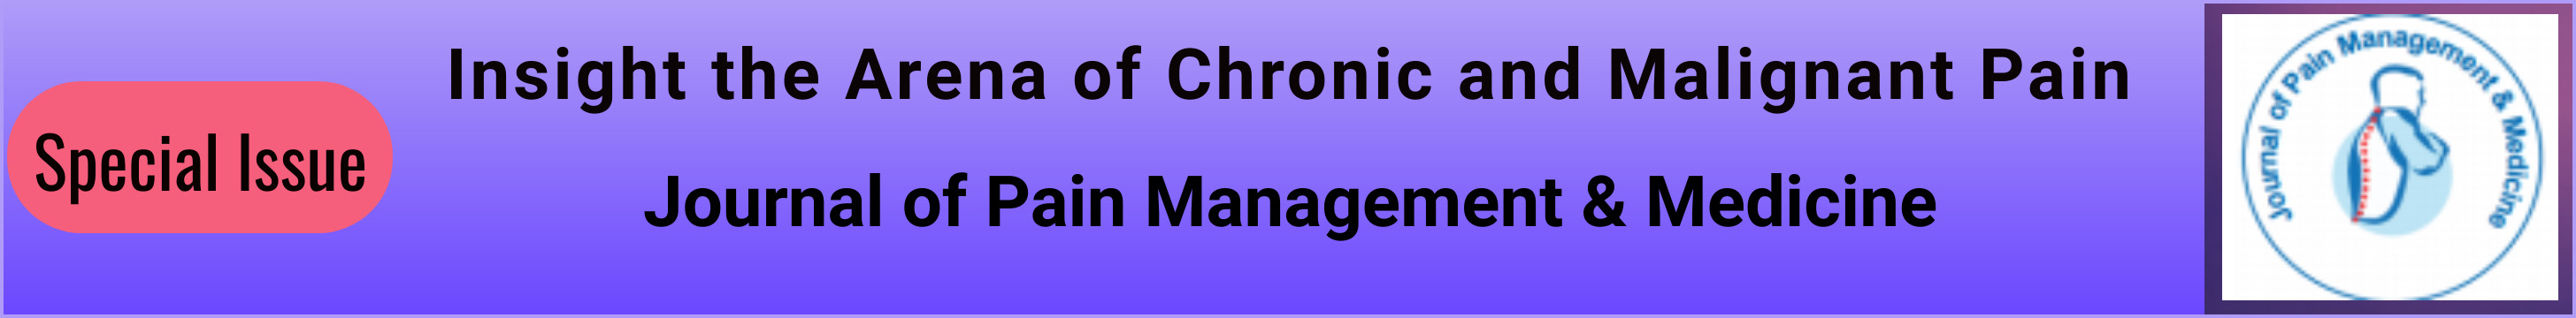 insight-the-arena-of-chronic-and-malignant-pain-2148.jpg